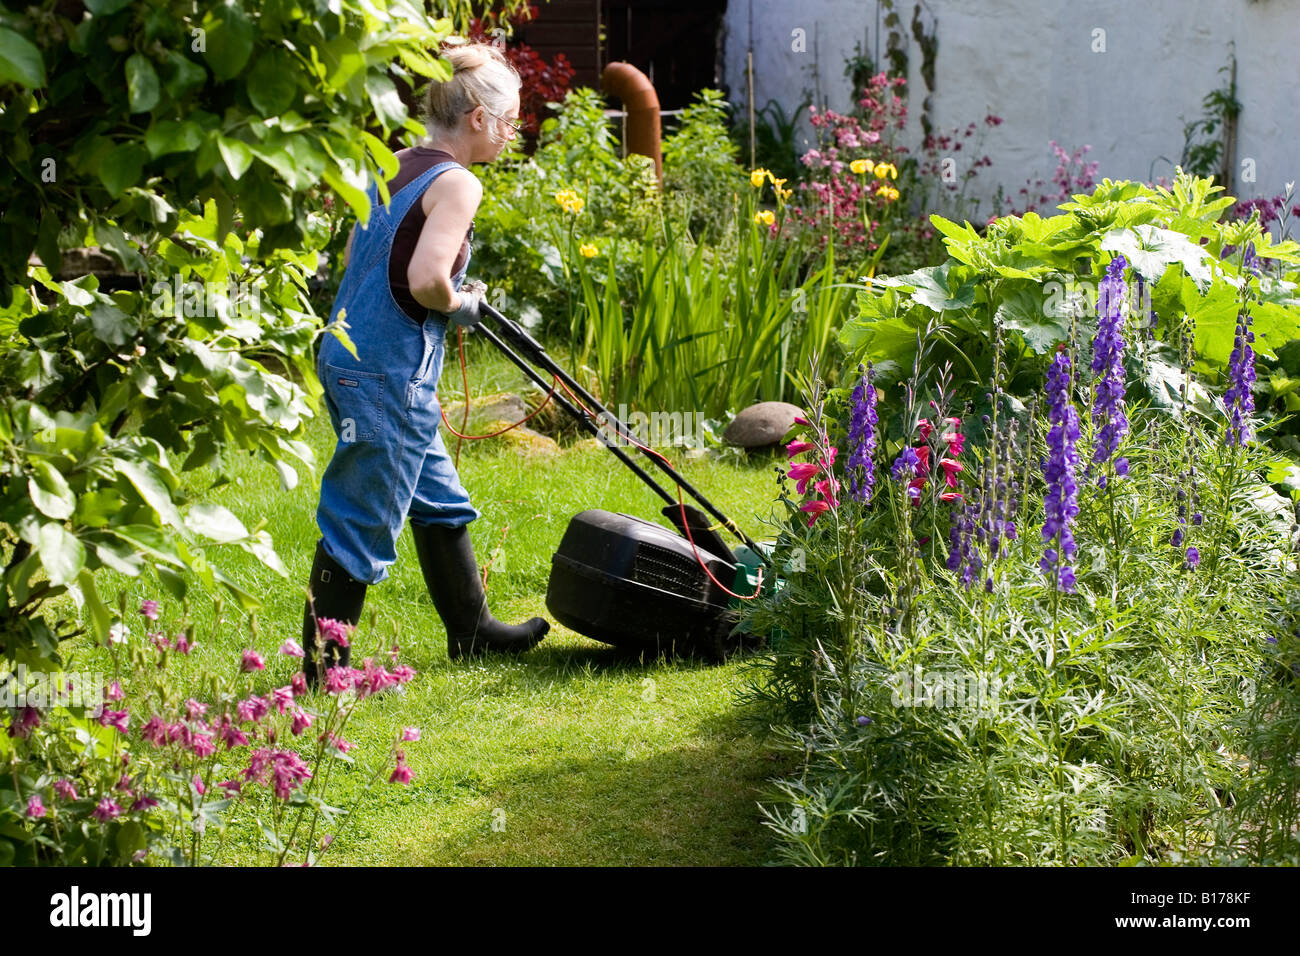 Woman Mowing Lawn in Summer - Stock Image